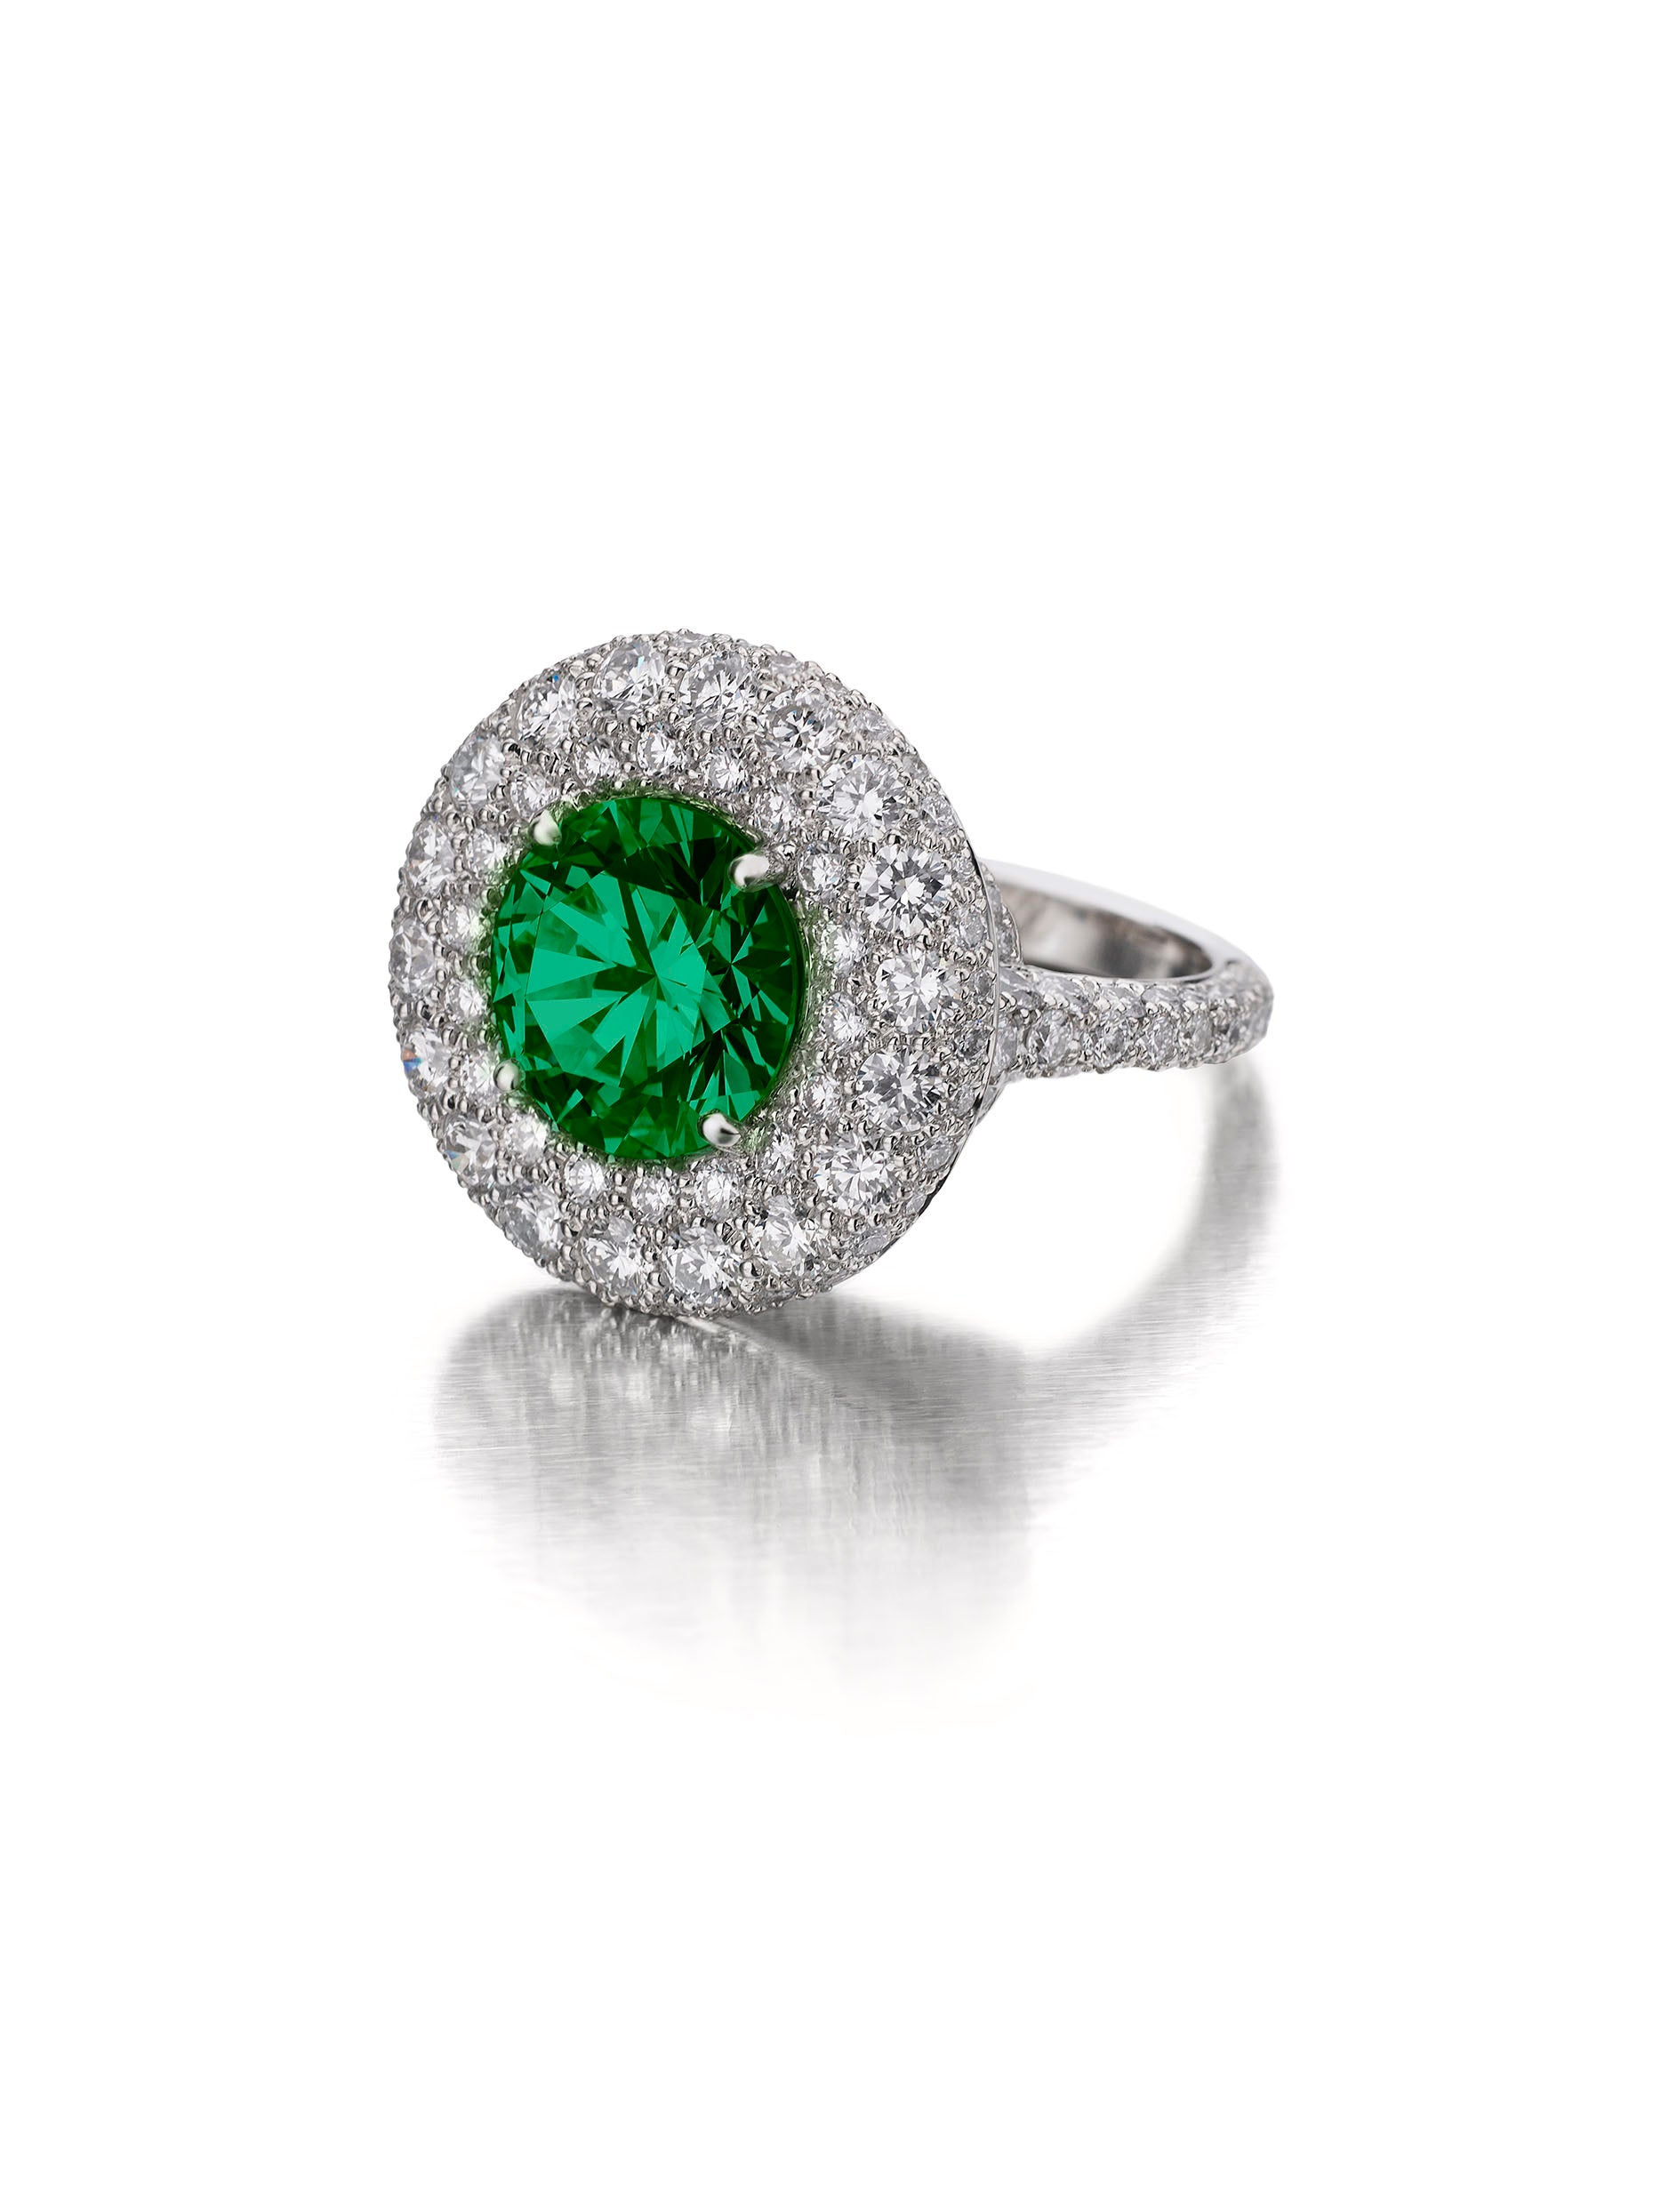 Luna Ring with Round Emerald